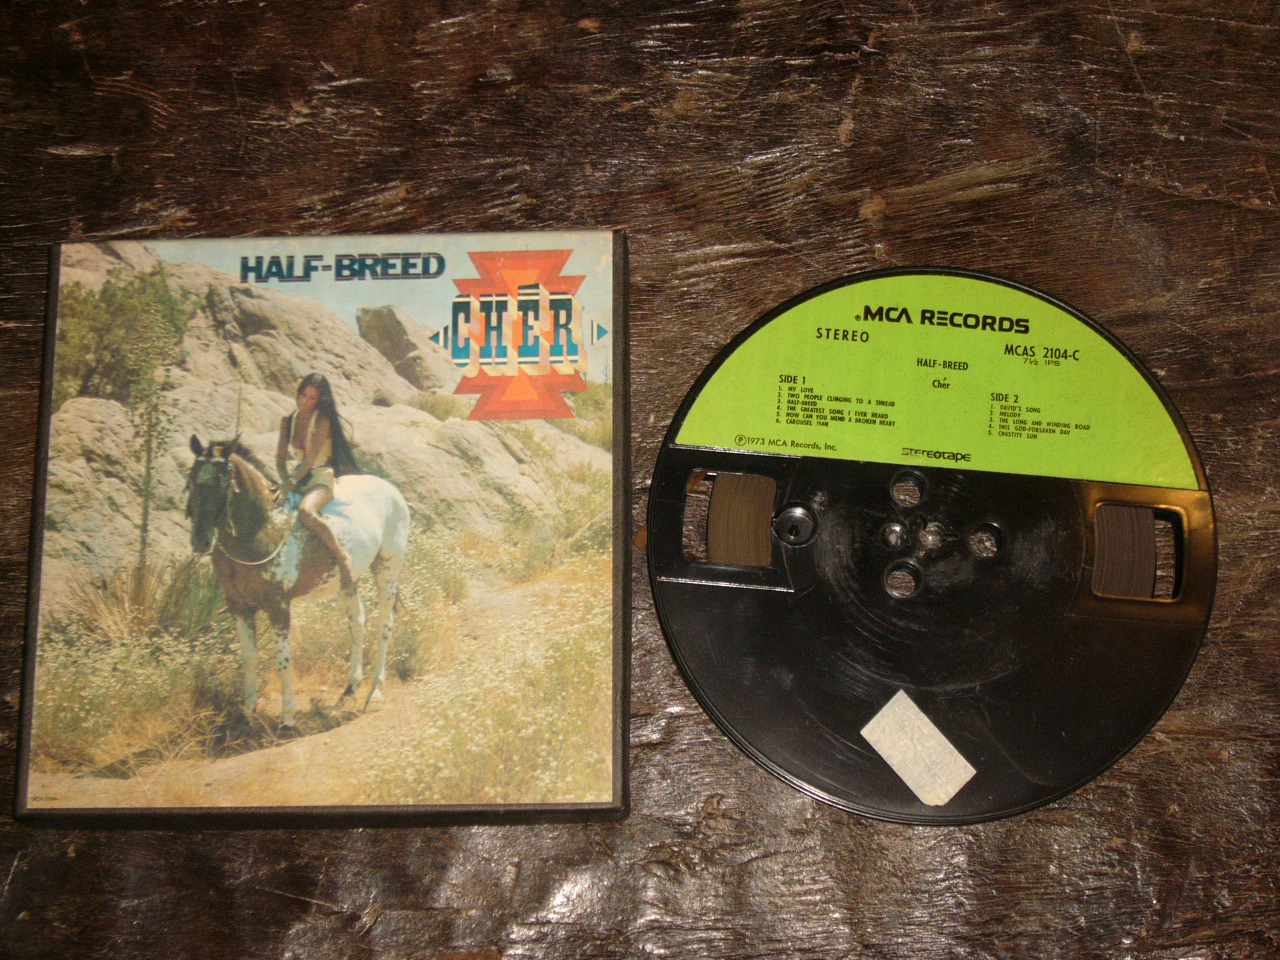 Cher - Half-Breed (Reel to Reel)